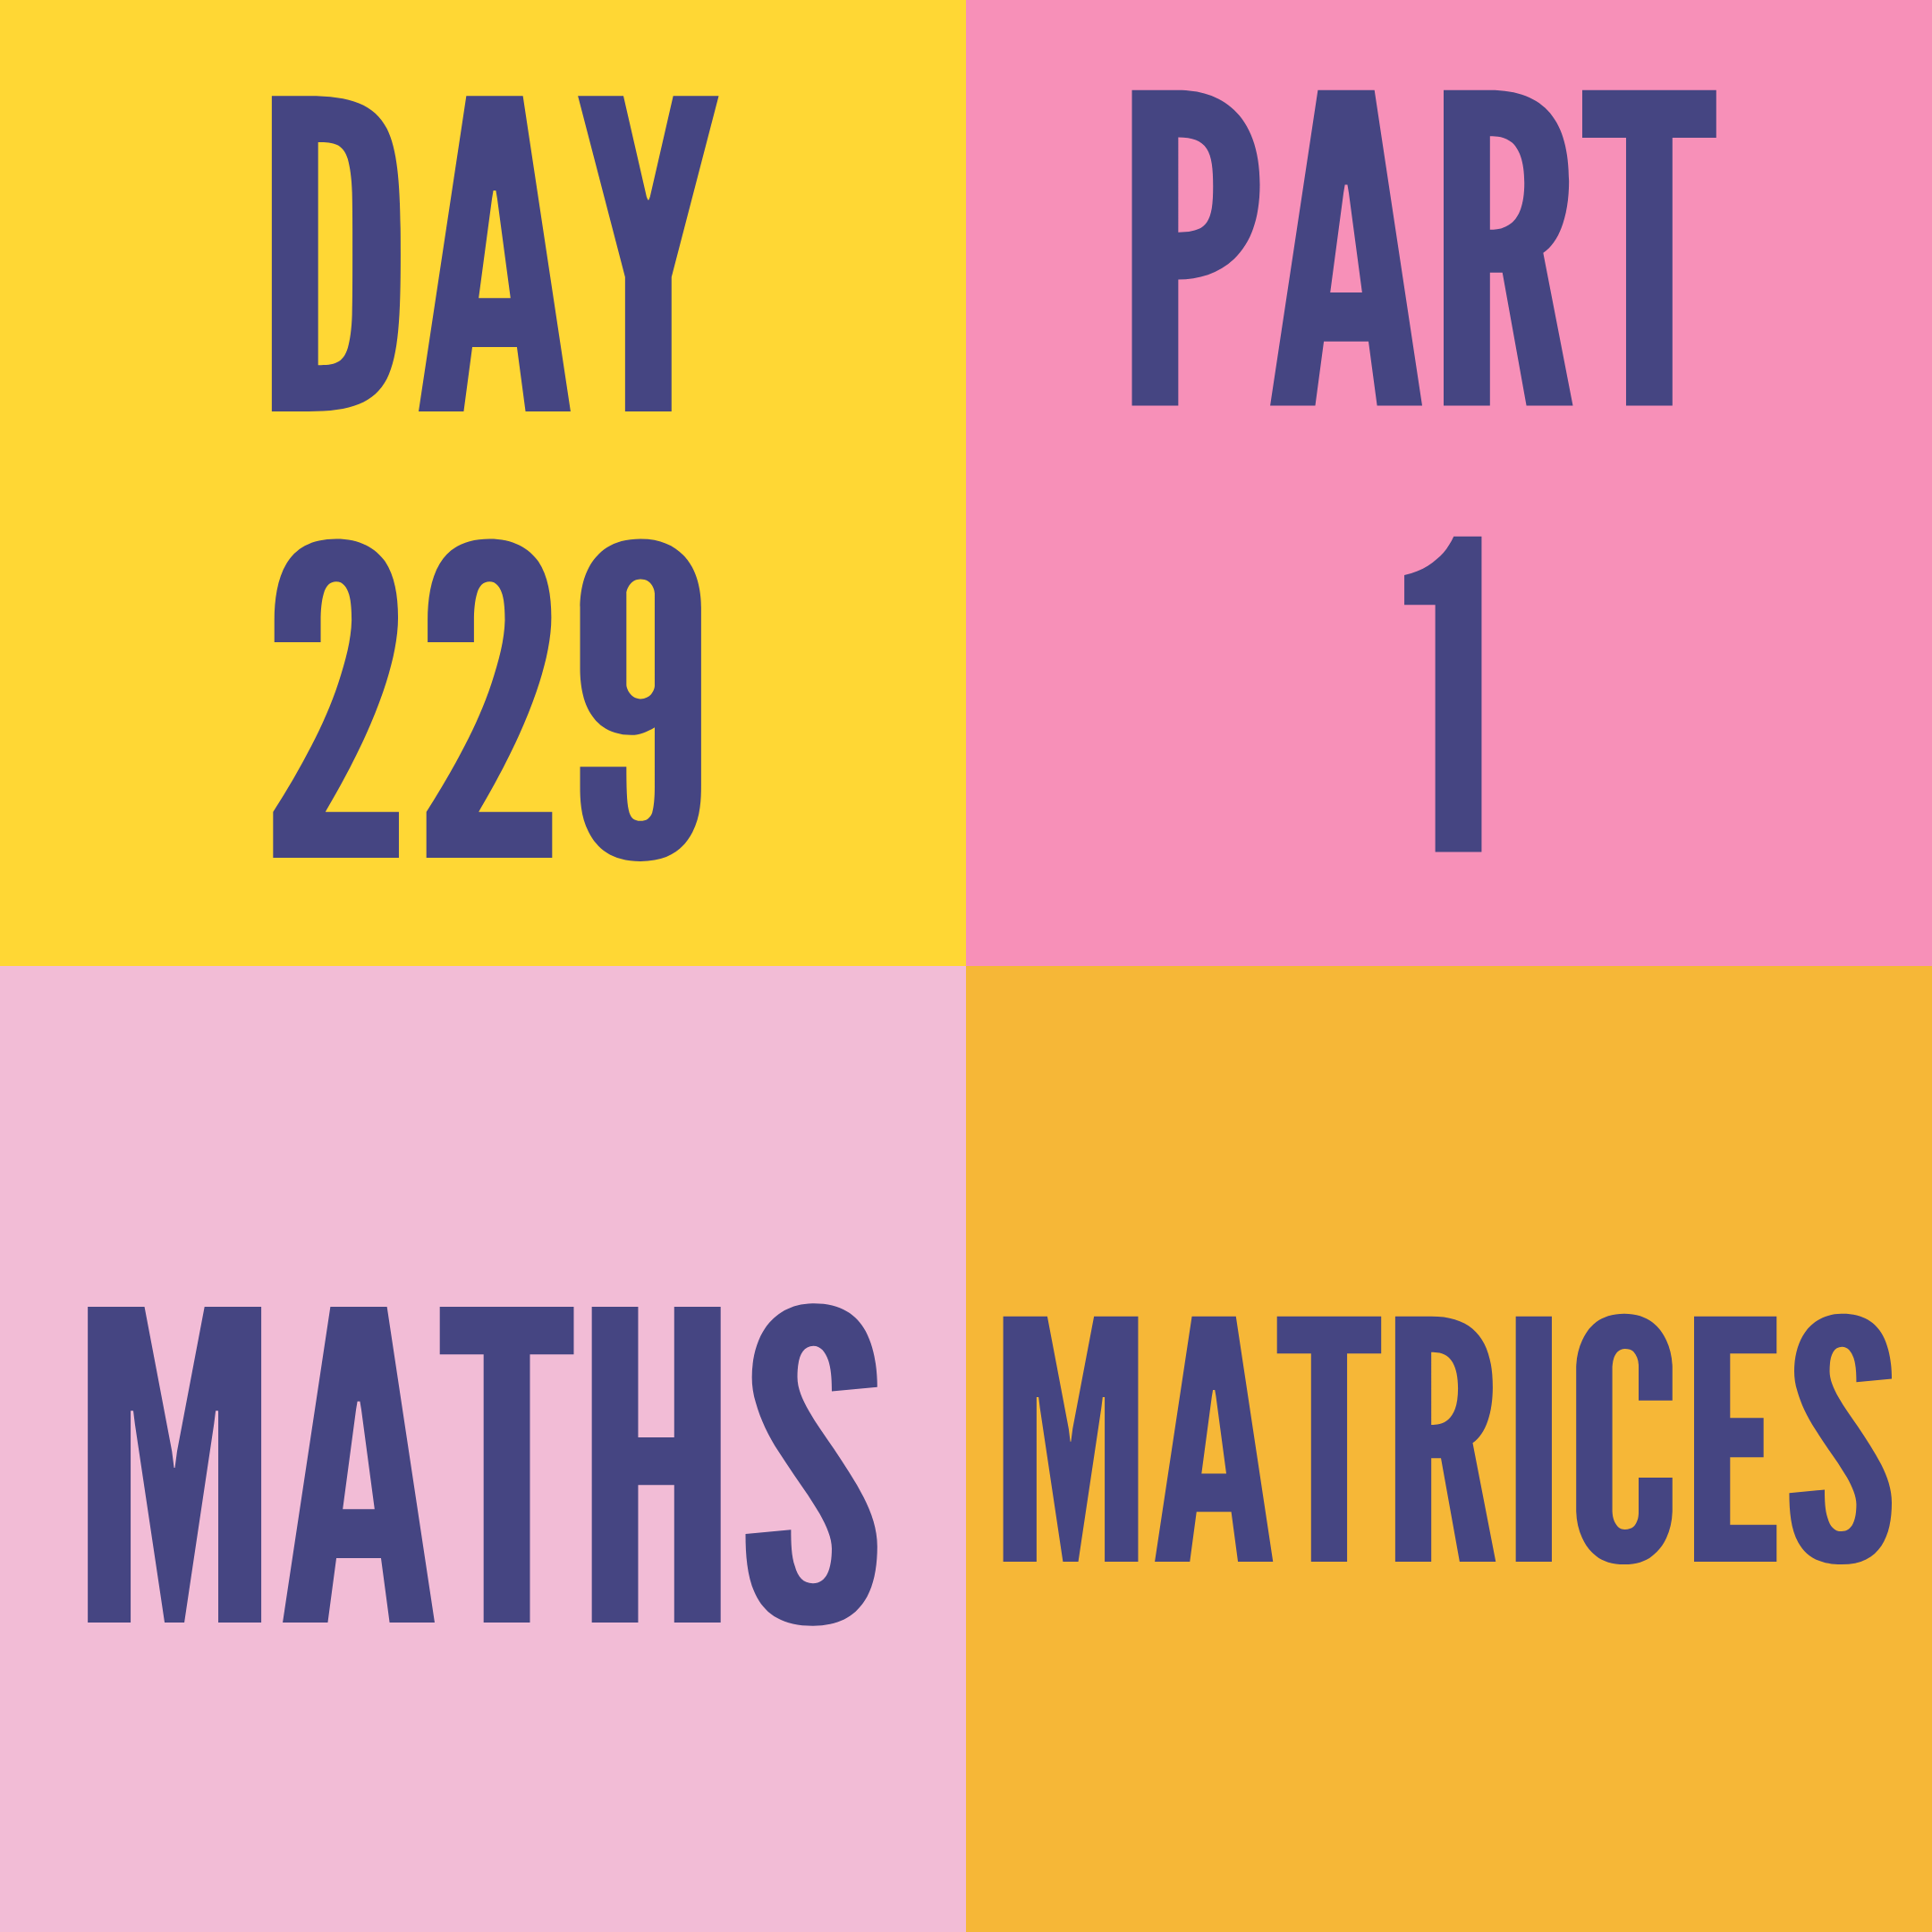 DAY-229 PART-1 MATRICES